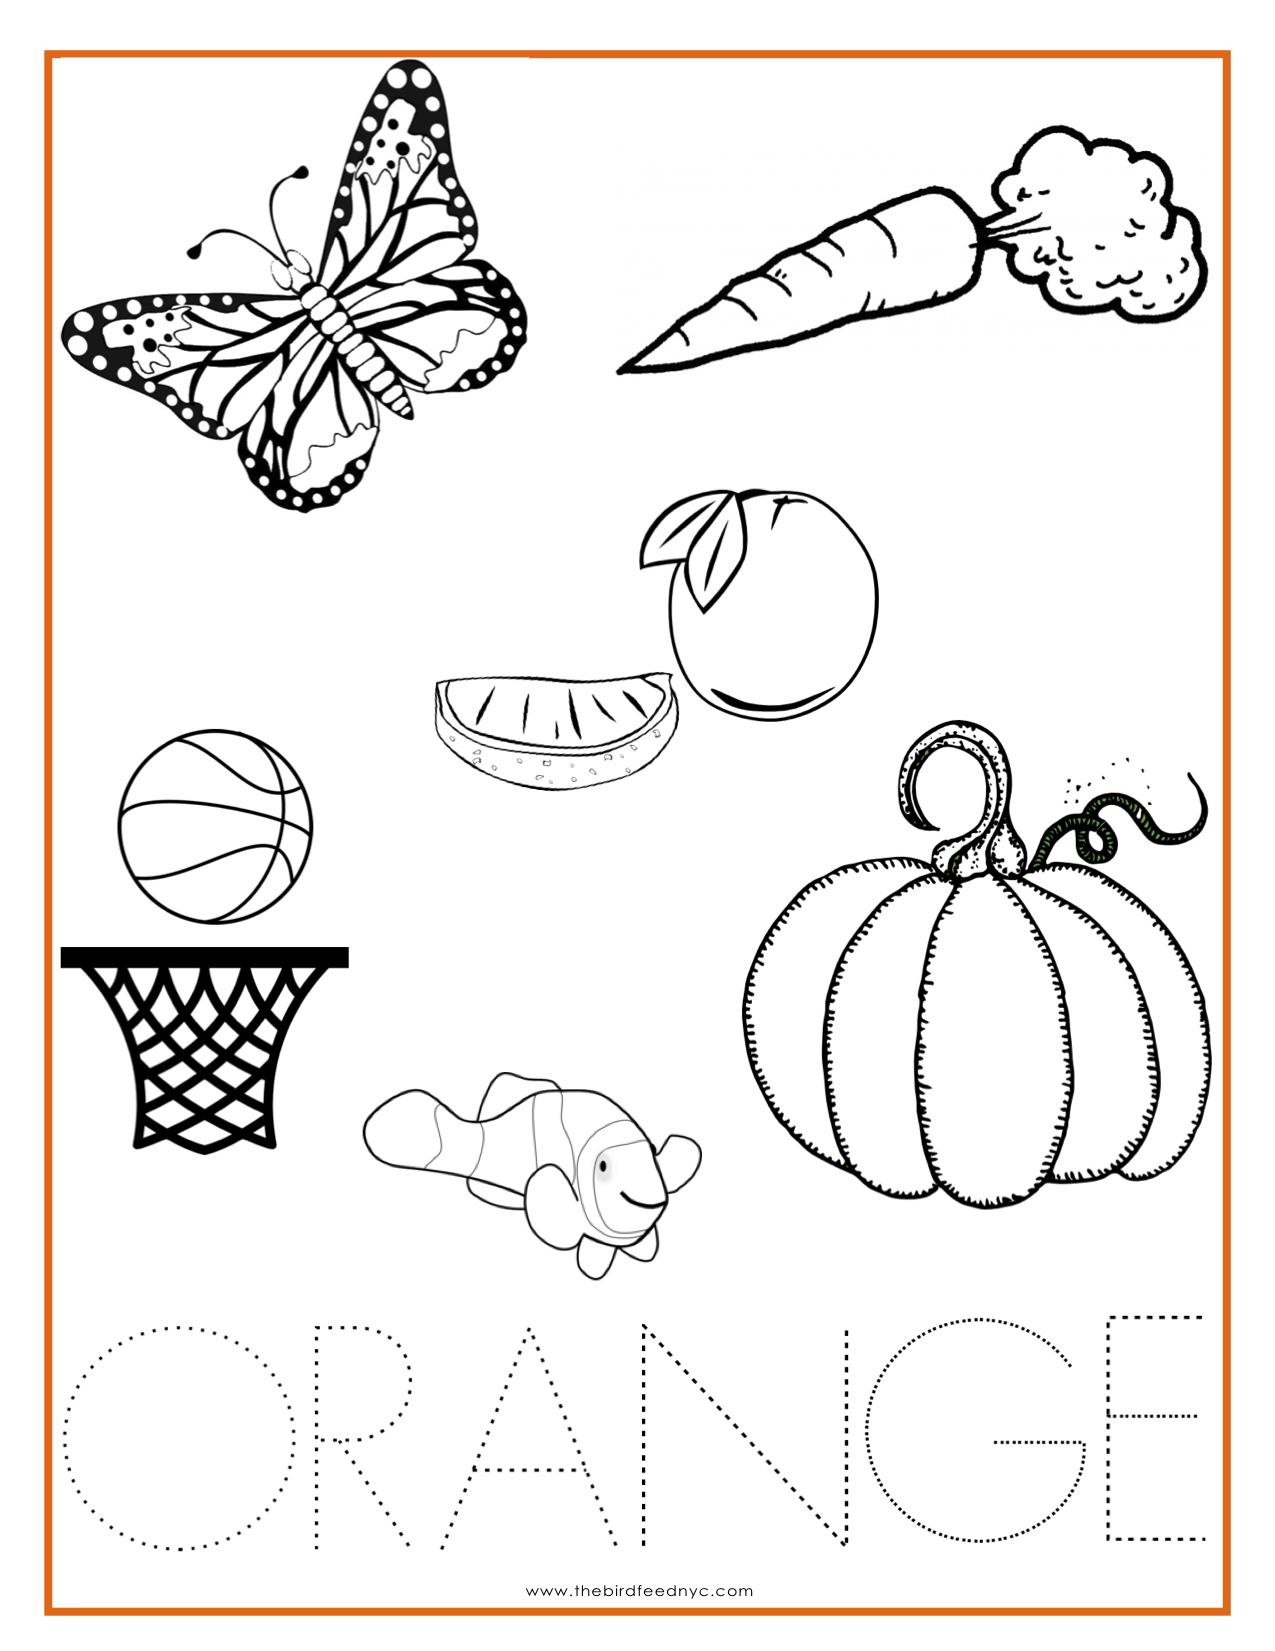 Adult Best Orange Coloring Pages Gallery Images beauty color orange coloring pages for kids cooloring com gallery images